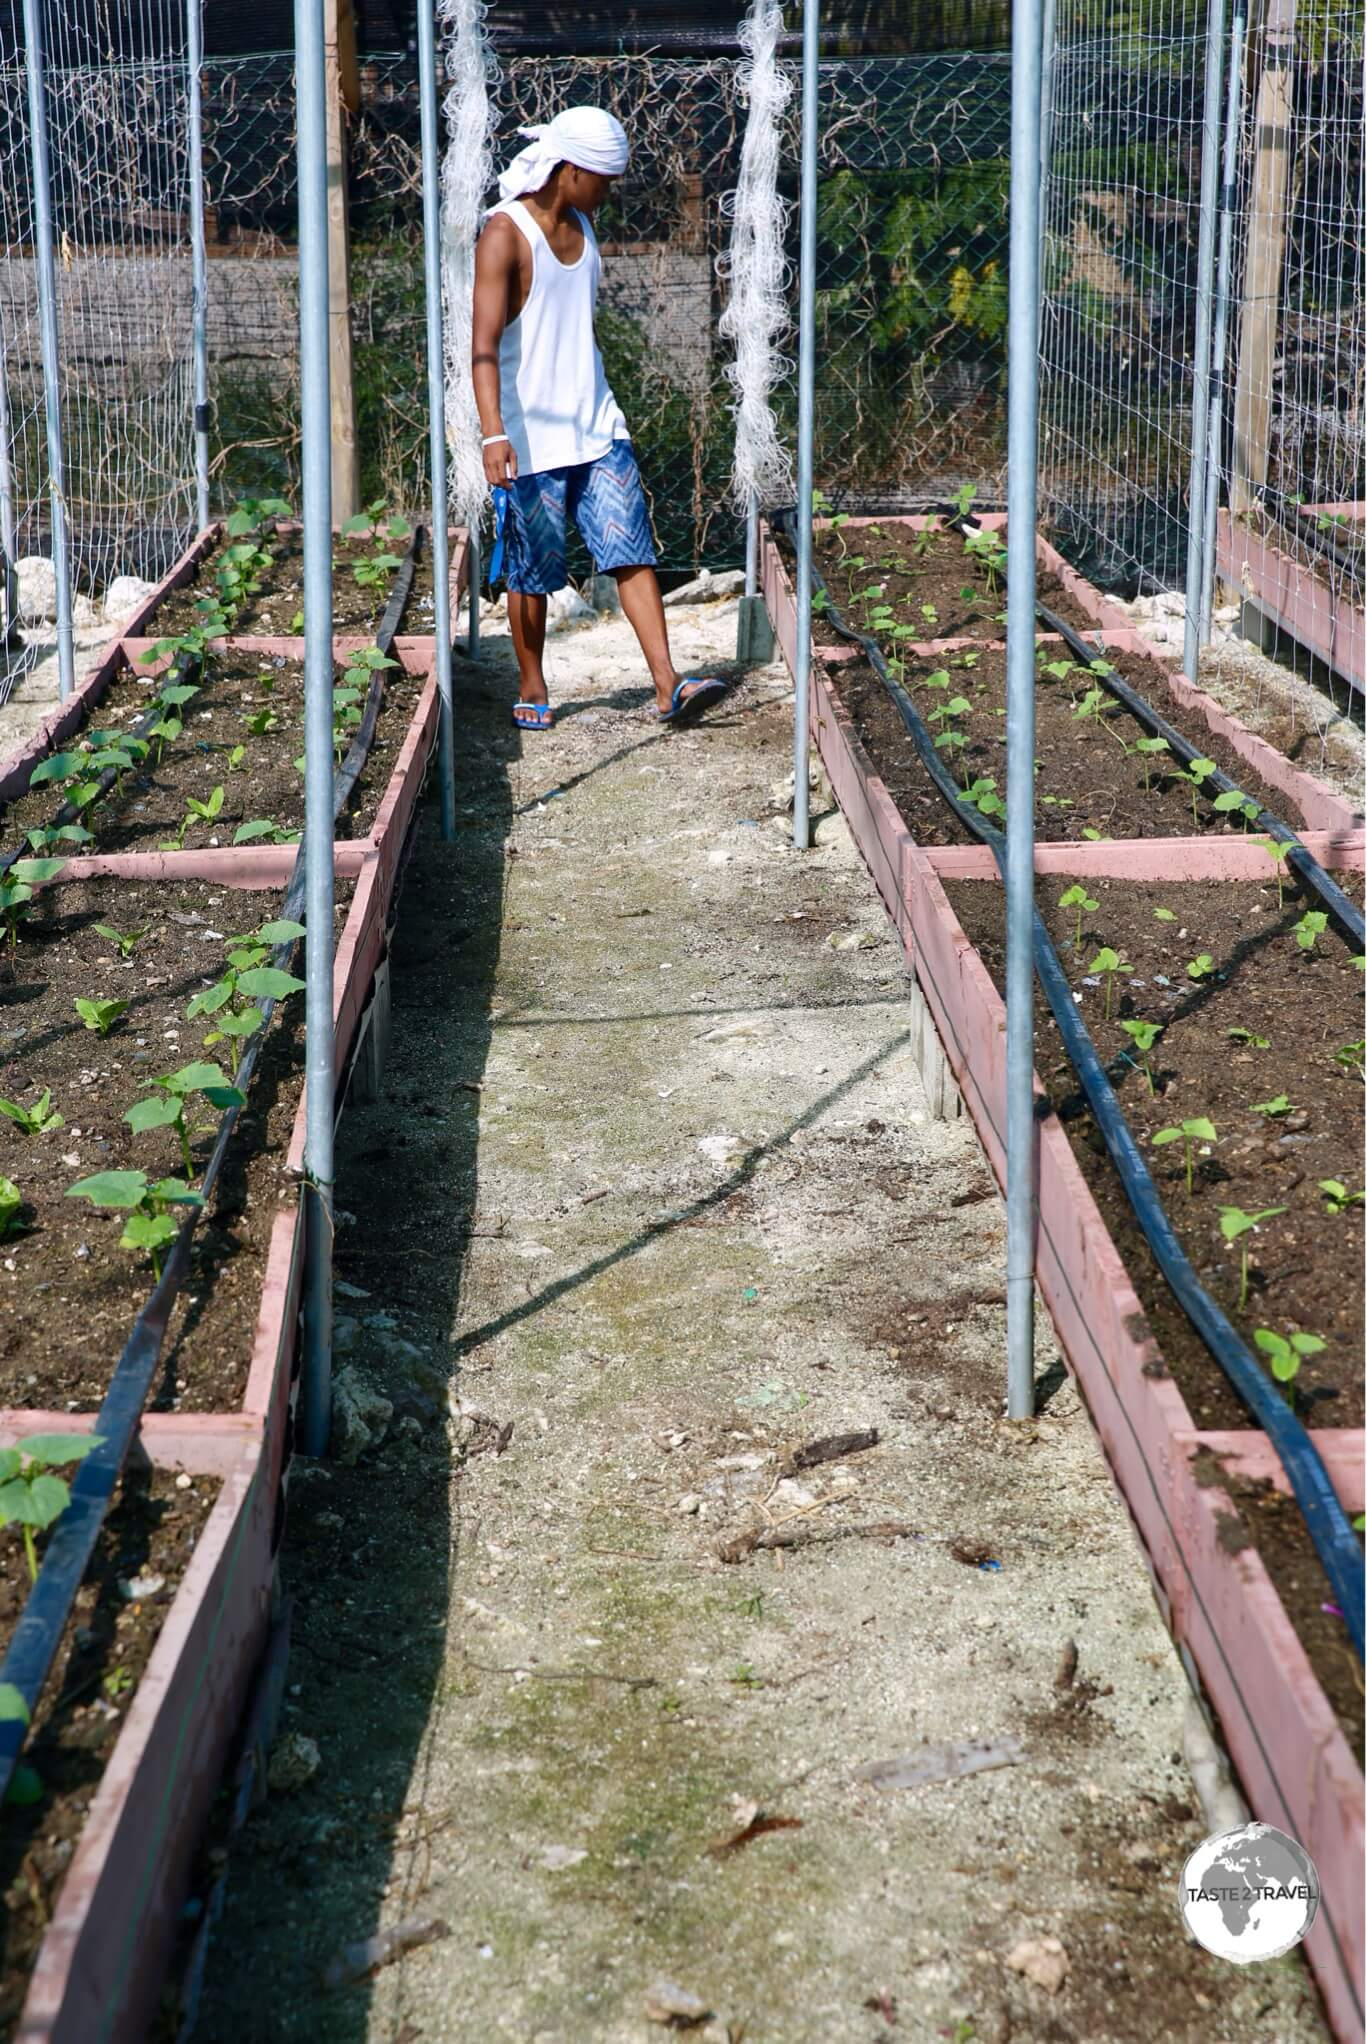 A Tuvaluan worker tending to new vegetable crops at the Taiwan-sponsored vegetable farm. The poor limestone soil on the atoll requires crops to be grown in raised planter boxes.